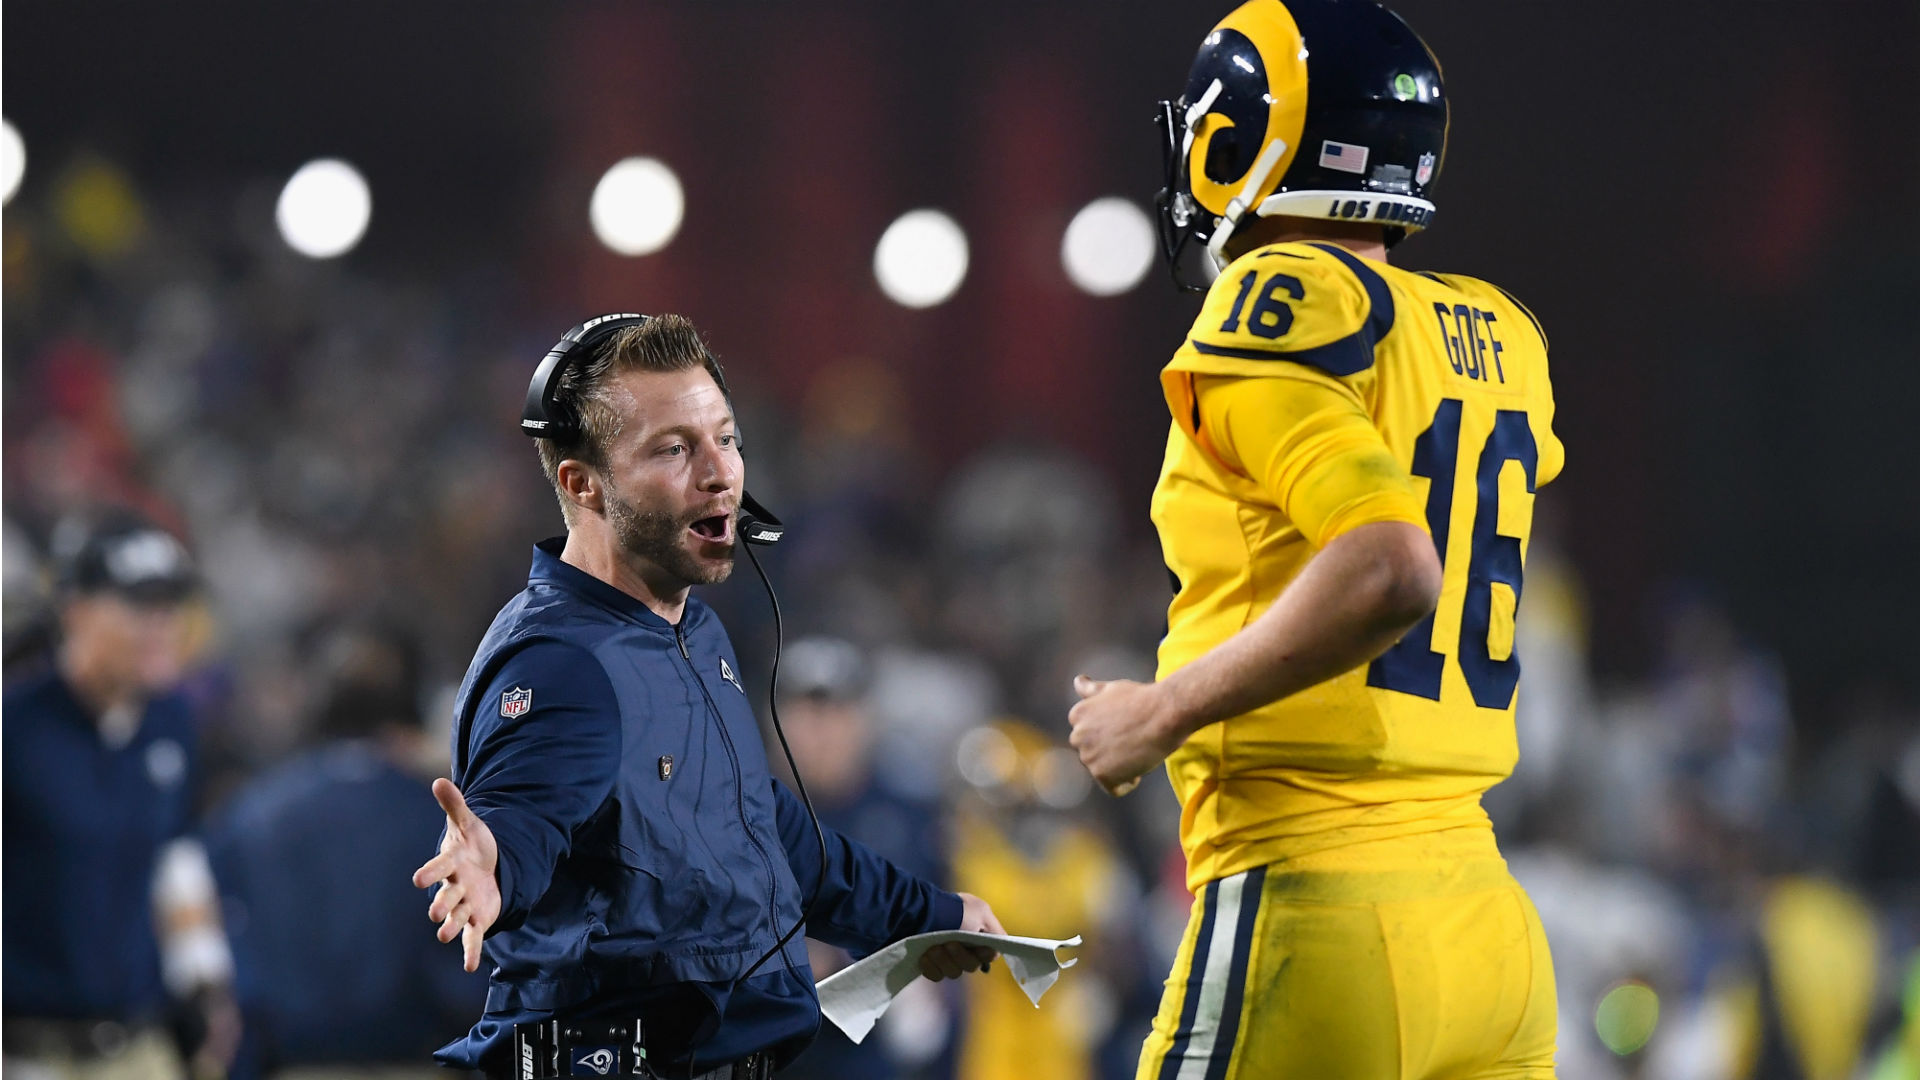 Rams coach Sean McVay: 'I might need a couple of beverages to relax'